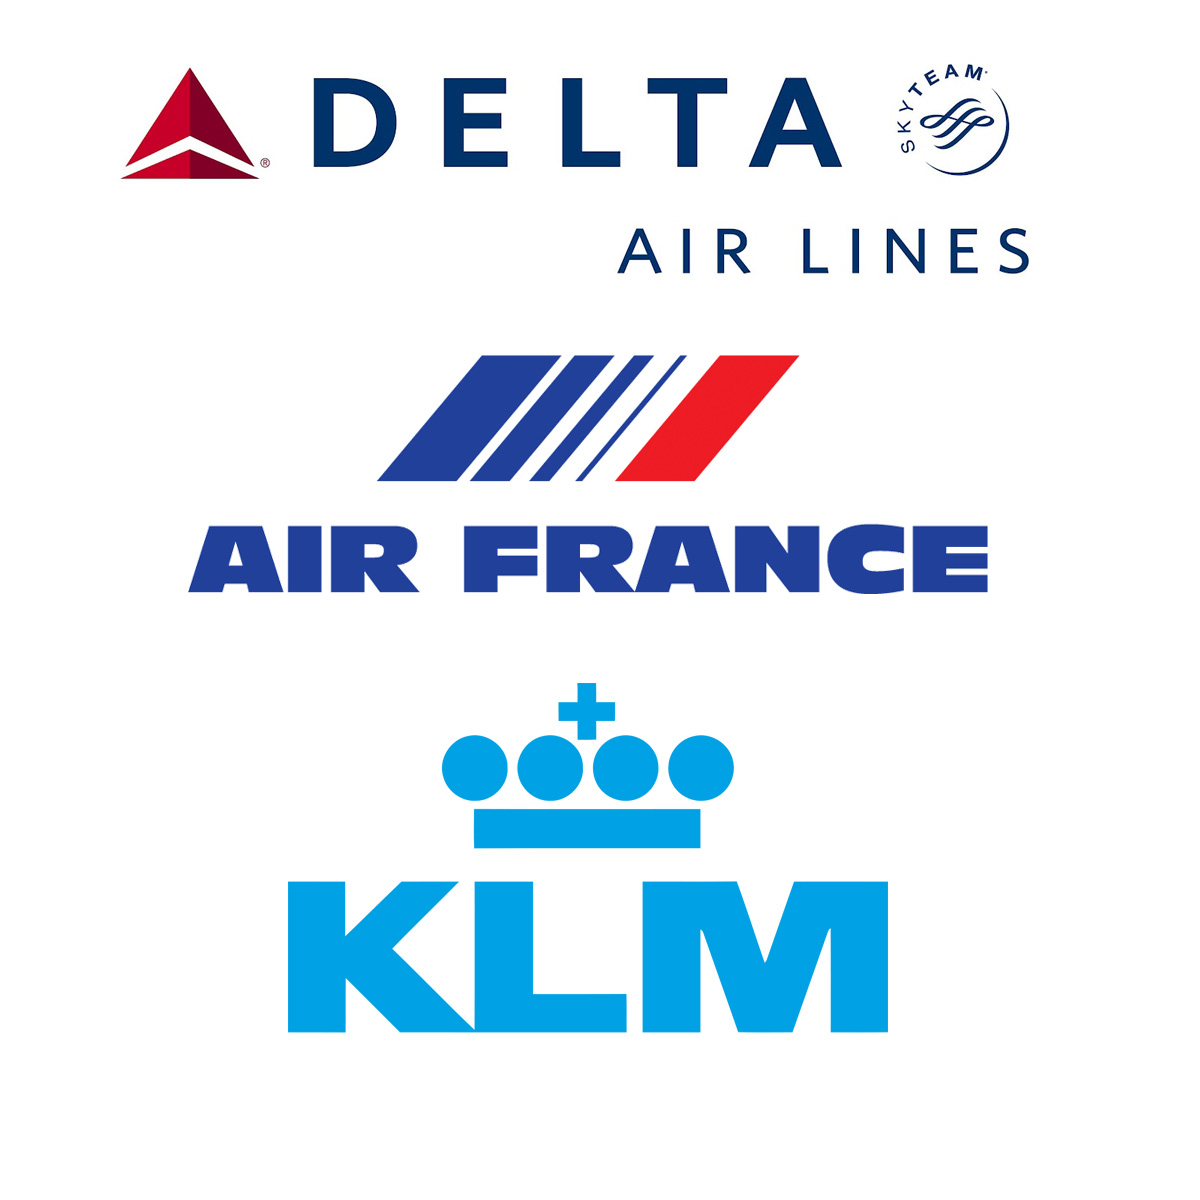 Flight schedule - We will fly into Denver International Airport. From there we can reach almost all locations in Tornado Alley for next day storm chasing. And with some luck, we could even chase the day of arrival.We travel with reputable airlines such as KLM, AirFrance & Delta from SkyTeam.Below are some examples of flights for May 2019. Airline companies can make changes to this. The time schedules mentioned are therefore indicative. Our actual flights can be with another airline and / or with another intermediate stop. Current pricing is around €500 - €600 for a return flight.(example)Amsterdam-Denver3 May 2019: 10: 30-15:44 Delta via Minneapolis13/14 May 2019: 18:00-13:25 Delta via Minneapolis